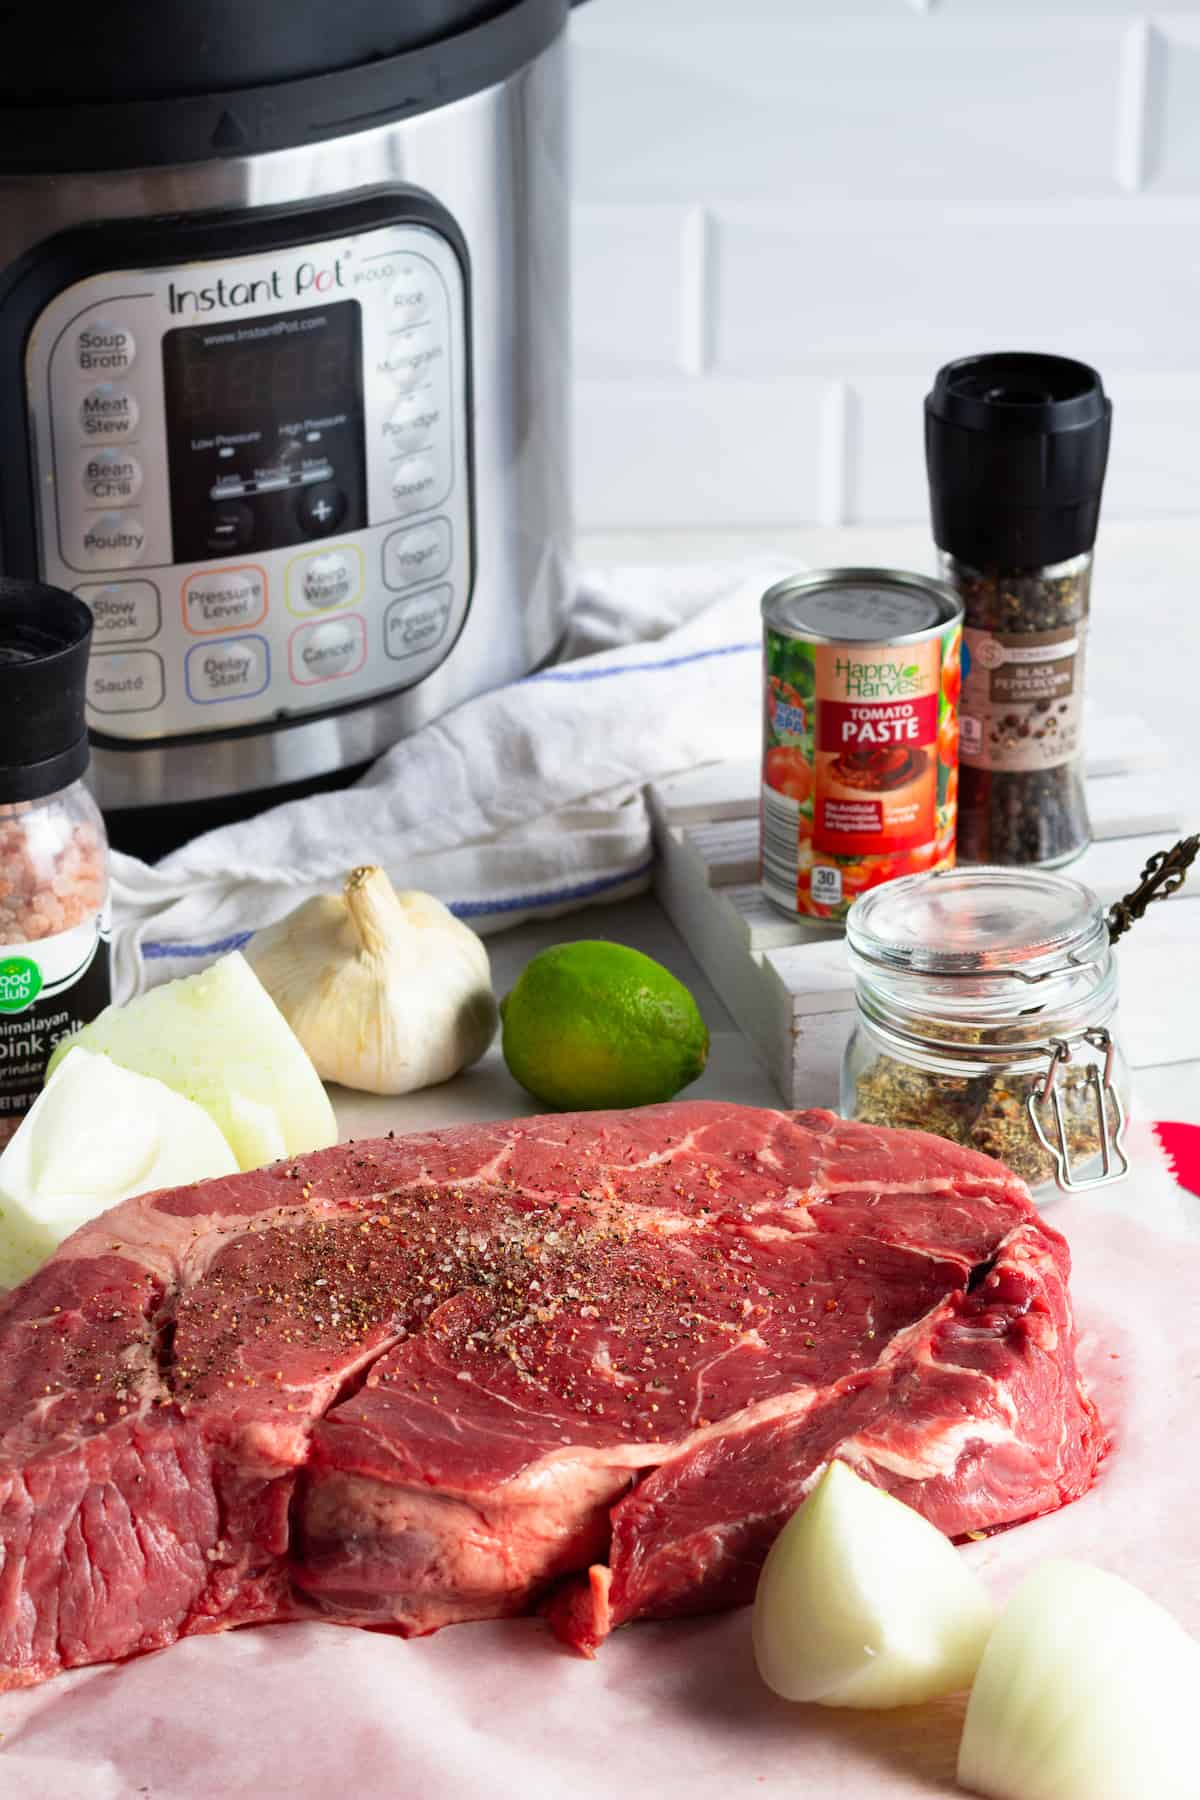 An Instant Pot, Tomato Paste, a Chuck Roast, Onions, a Lime and the Other Beef Barbacoa Ingredients